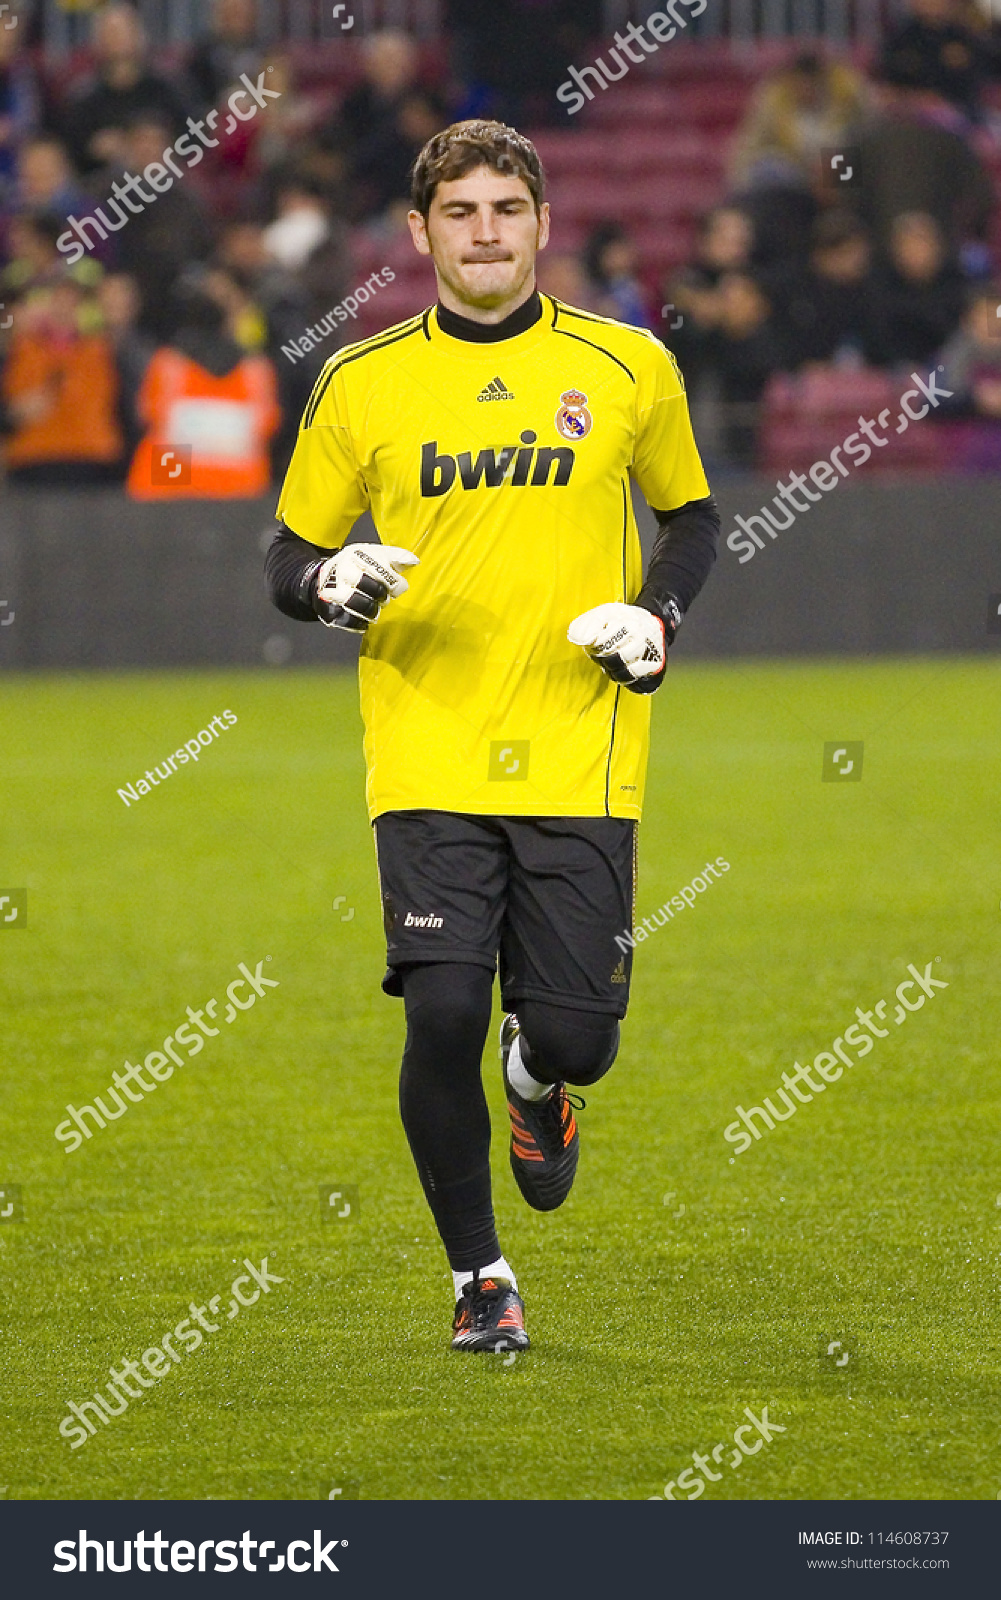 9fd9efac2 BARCELONA - JANUARY 25  Iker Casillas warm-up before the Spanish Cup match  between FC Barcelona and Real Madrid